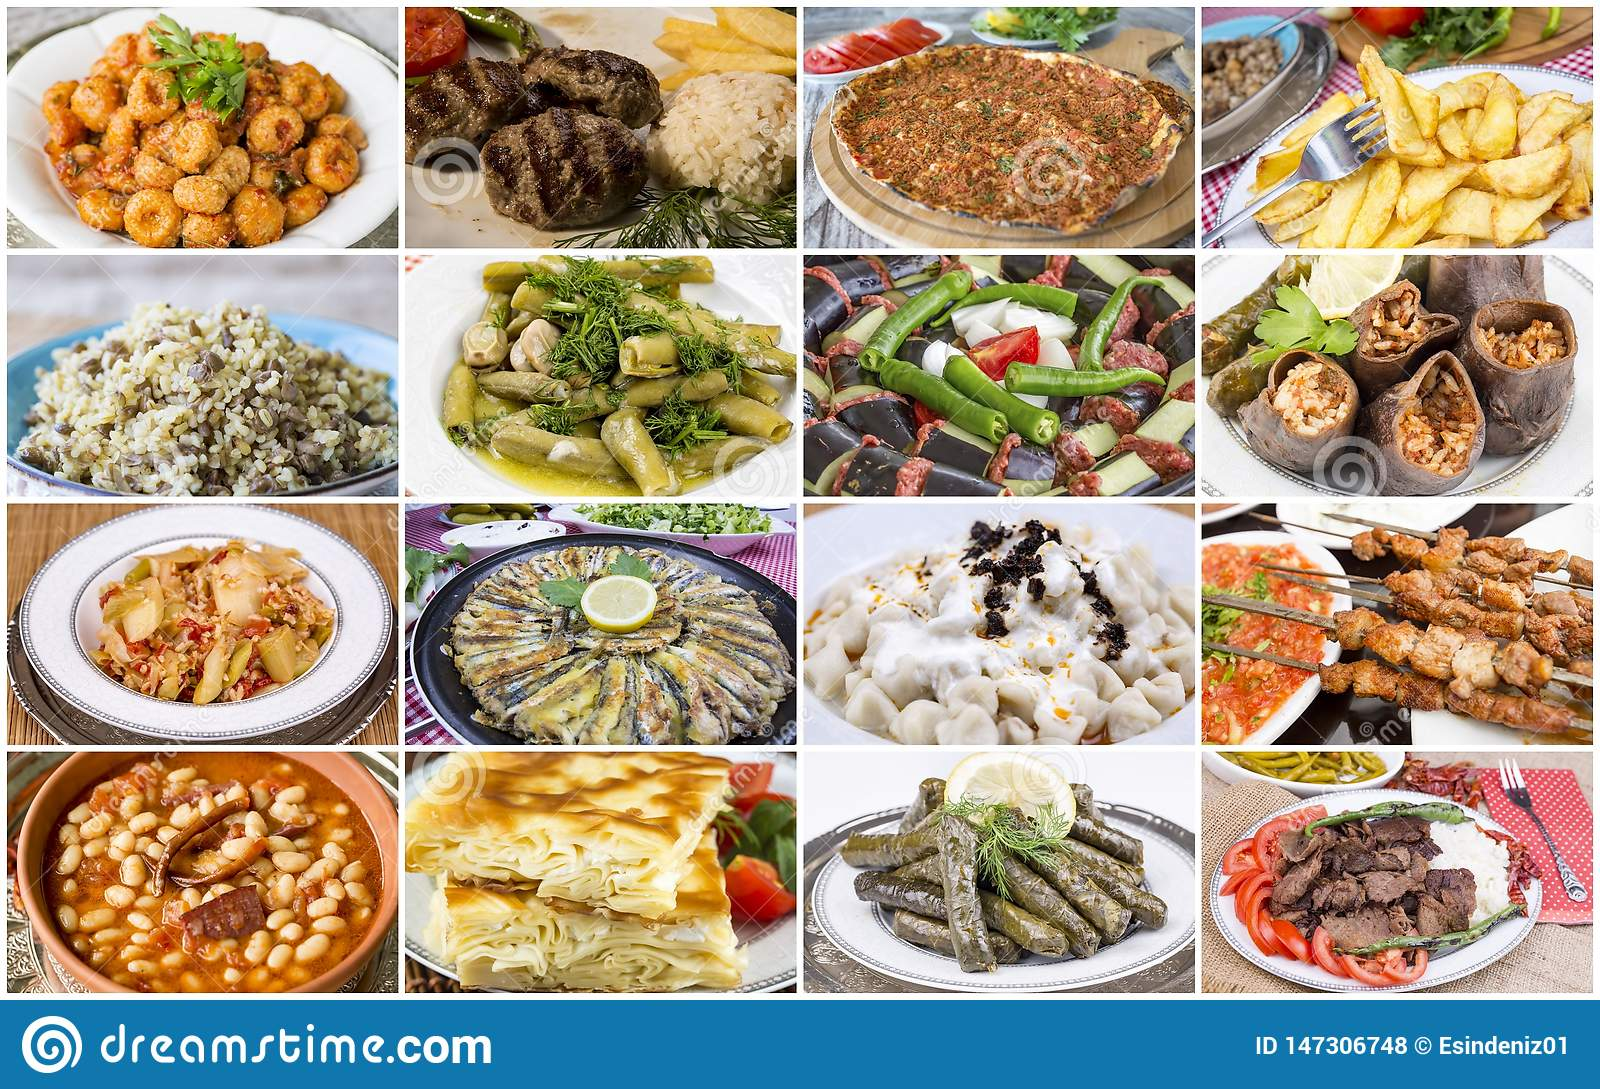 Traditional delicious Turkish foods collage. Food concept photo